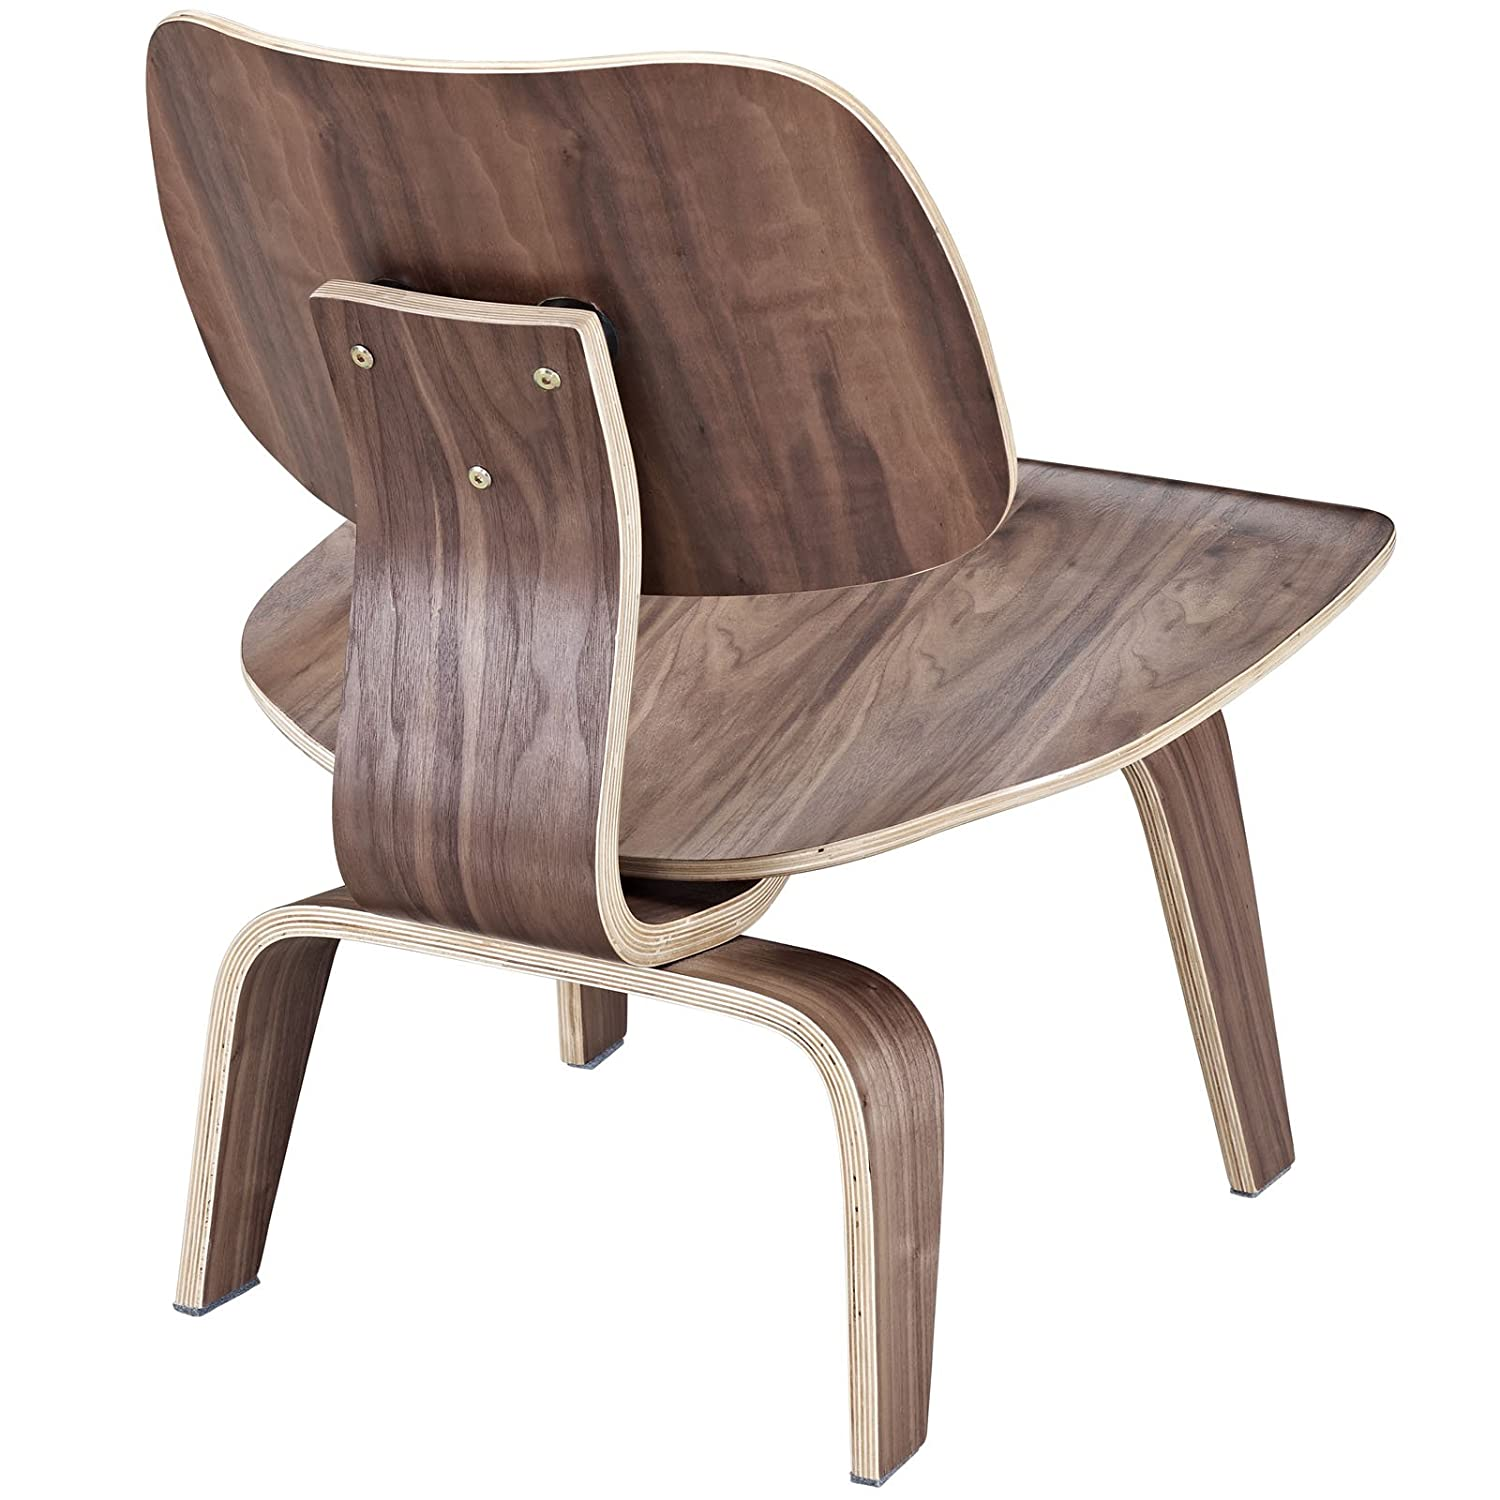 Amazon Modway Fathom Plywood Lounge Chair in Walnut Kitchen